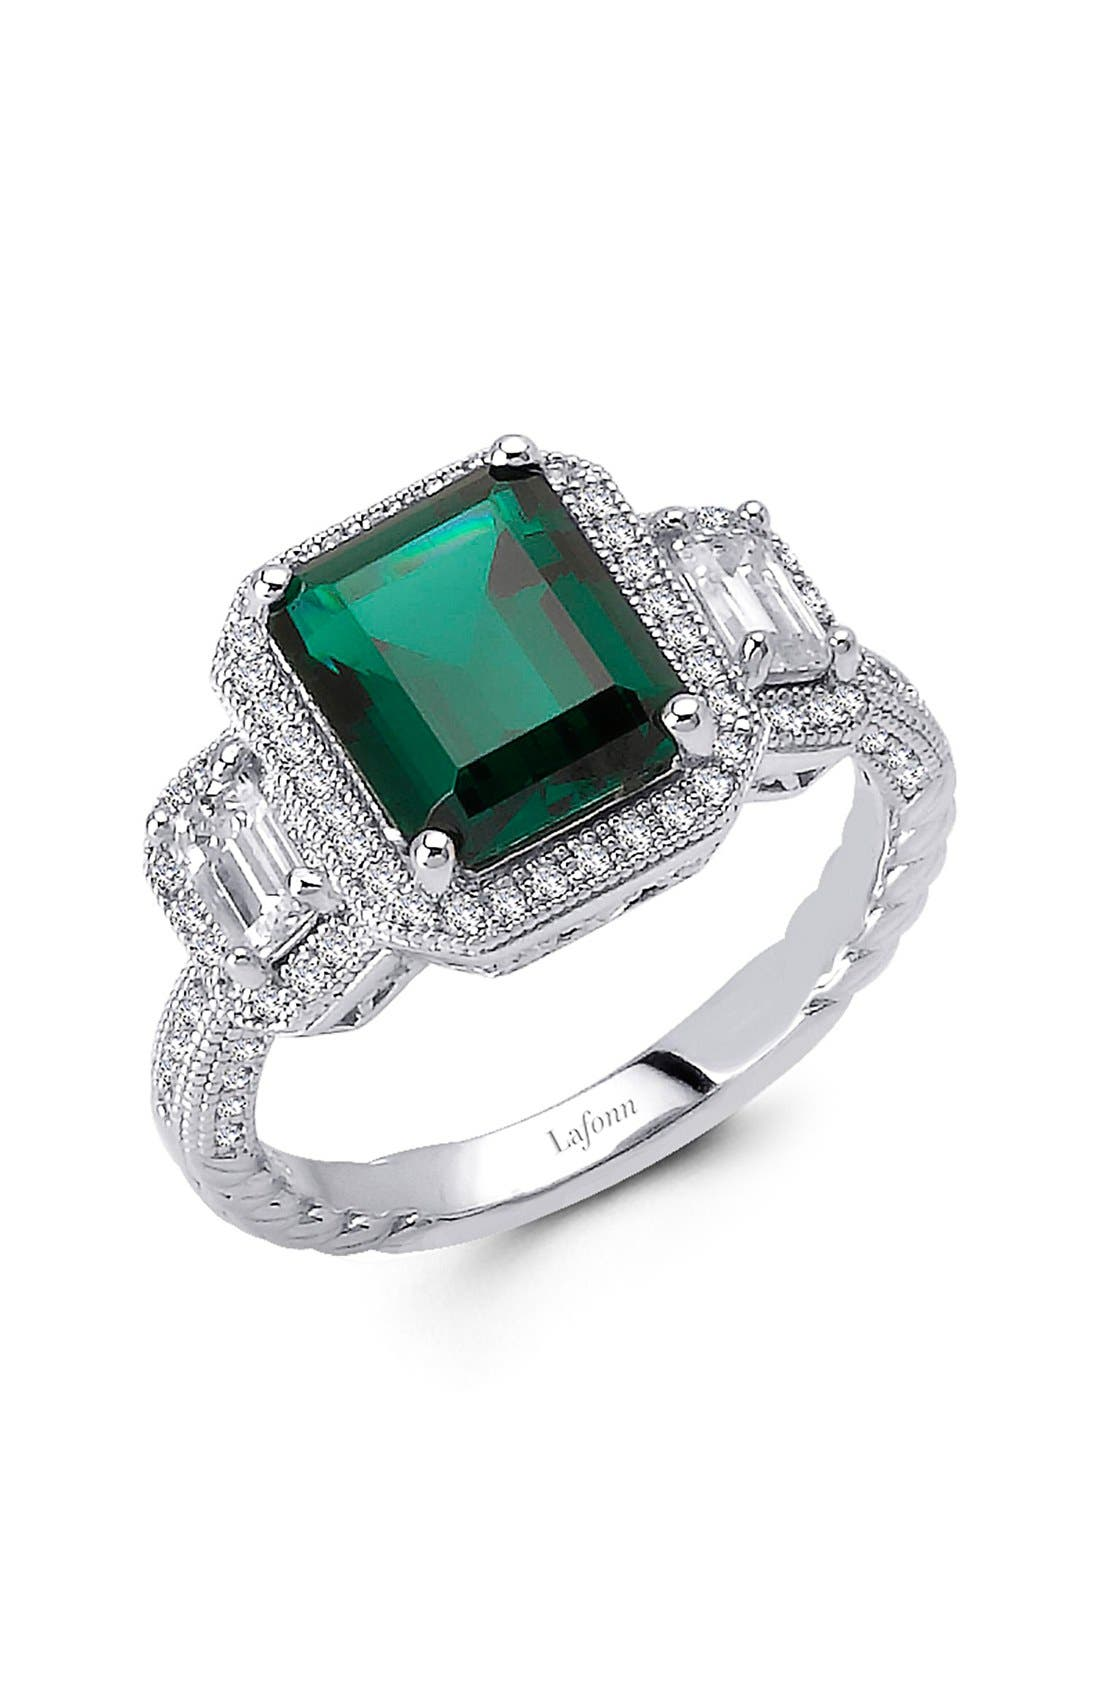 'Lassaire' Three Stone Ring,                             Main thumbnail 1, color,                             Emerald/ Silver